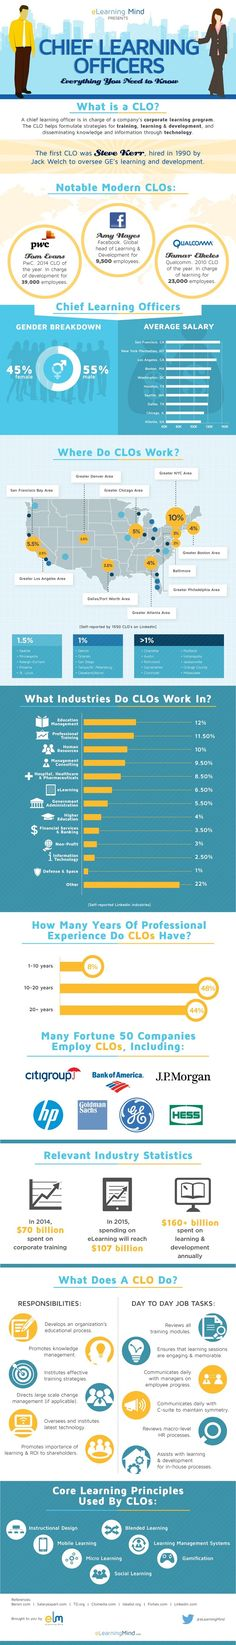 Chief Learning Officers Infographic - http://elearninginfographics.com/chief-learning-officers-infographic/